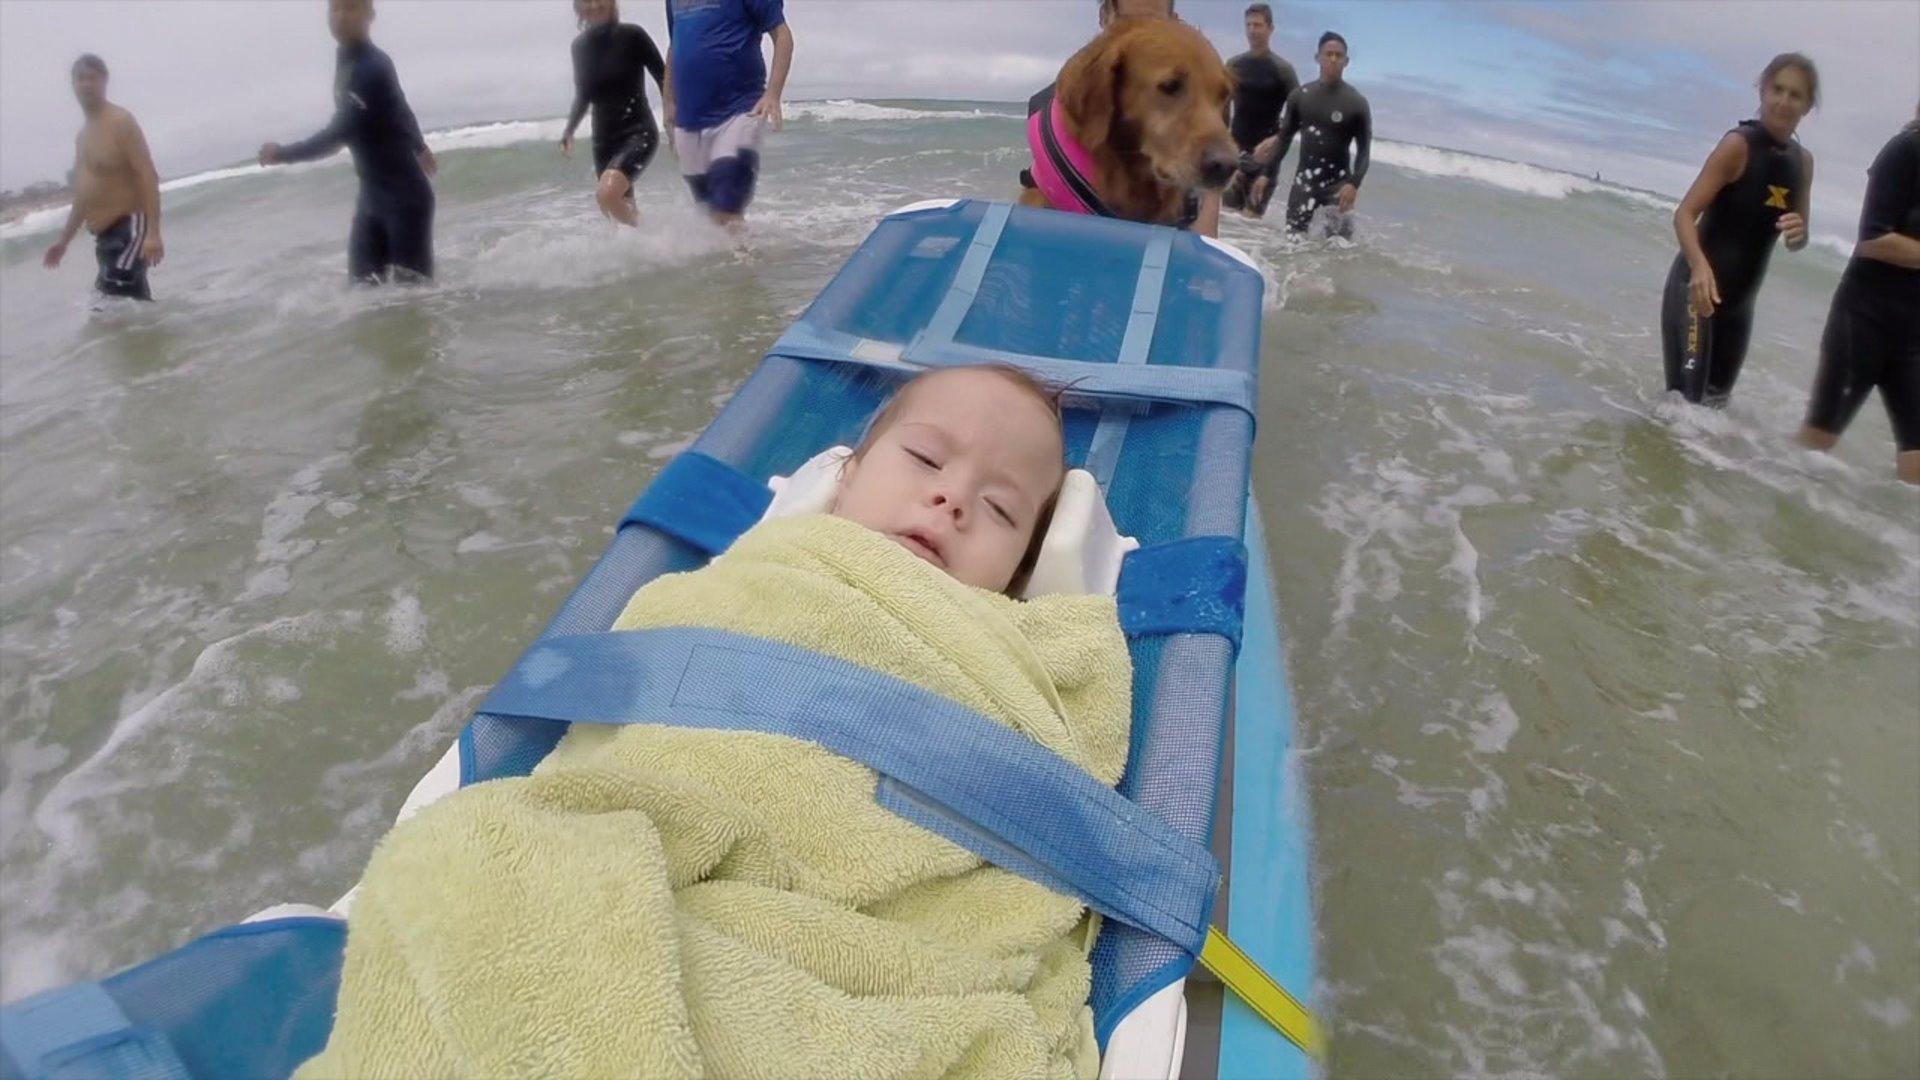 Young sisters with terminal illnesses surf with help of a dog